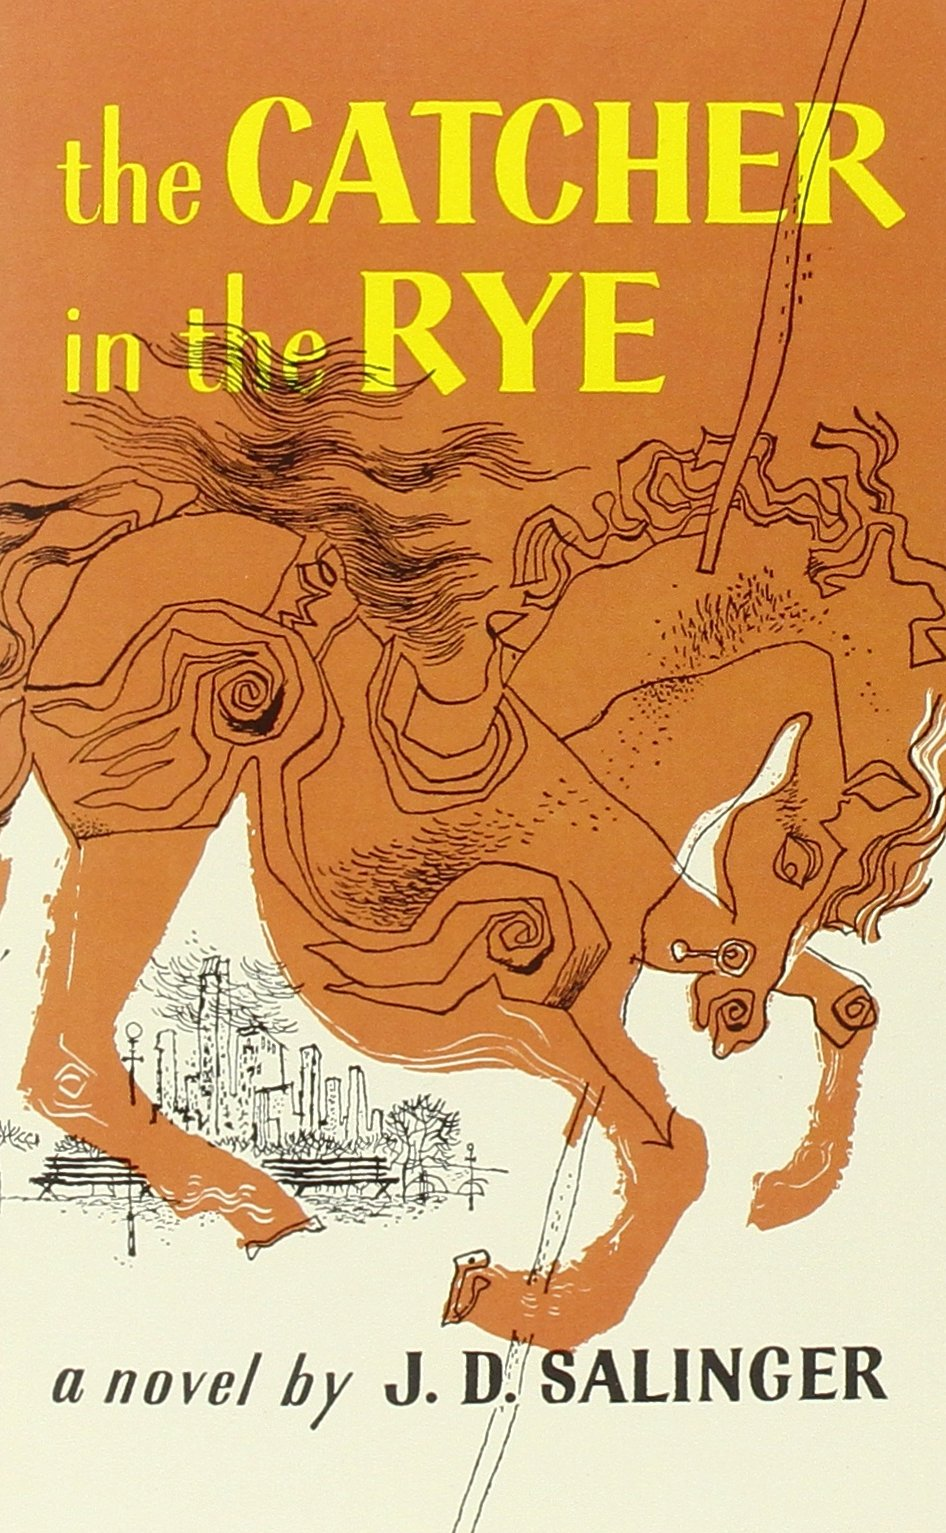 Amazon.com: The Catcher in the Rye (9787543321724): J.D. Salinger ...